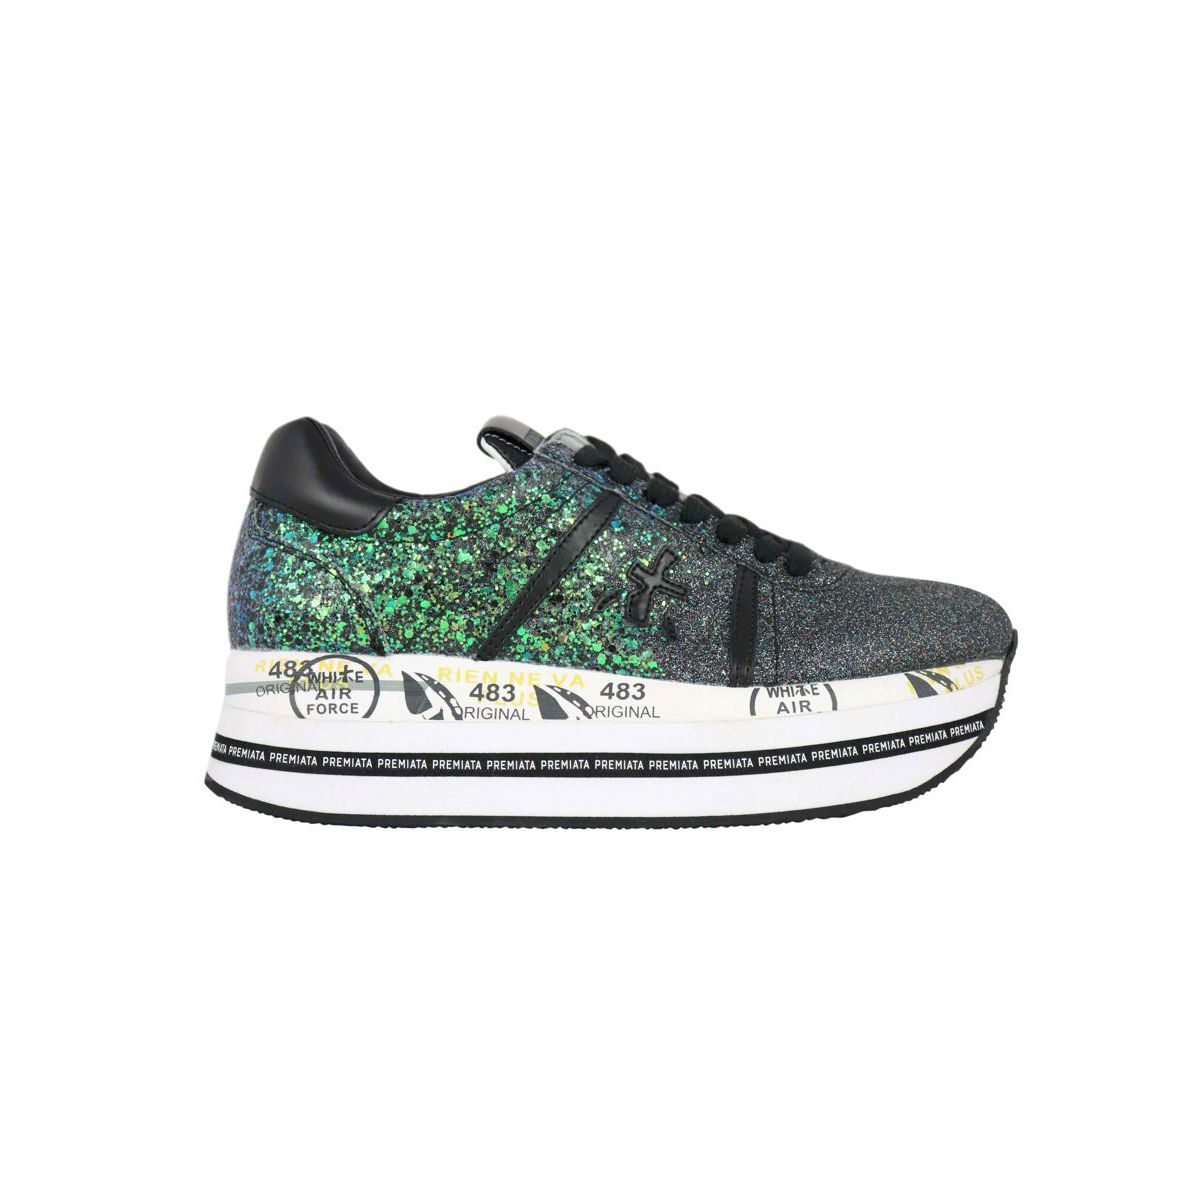 Beth 4036 Sneakers Green / anthracite Premiata